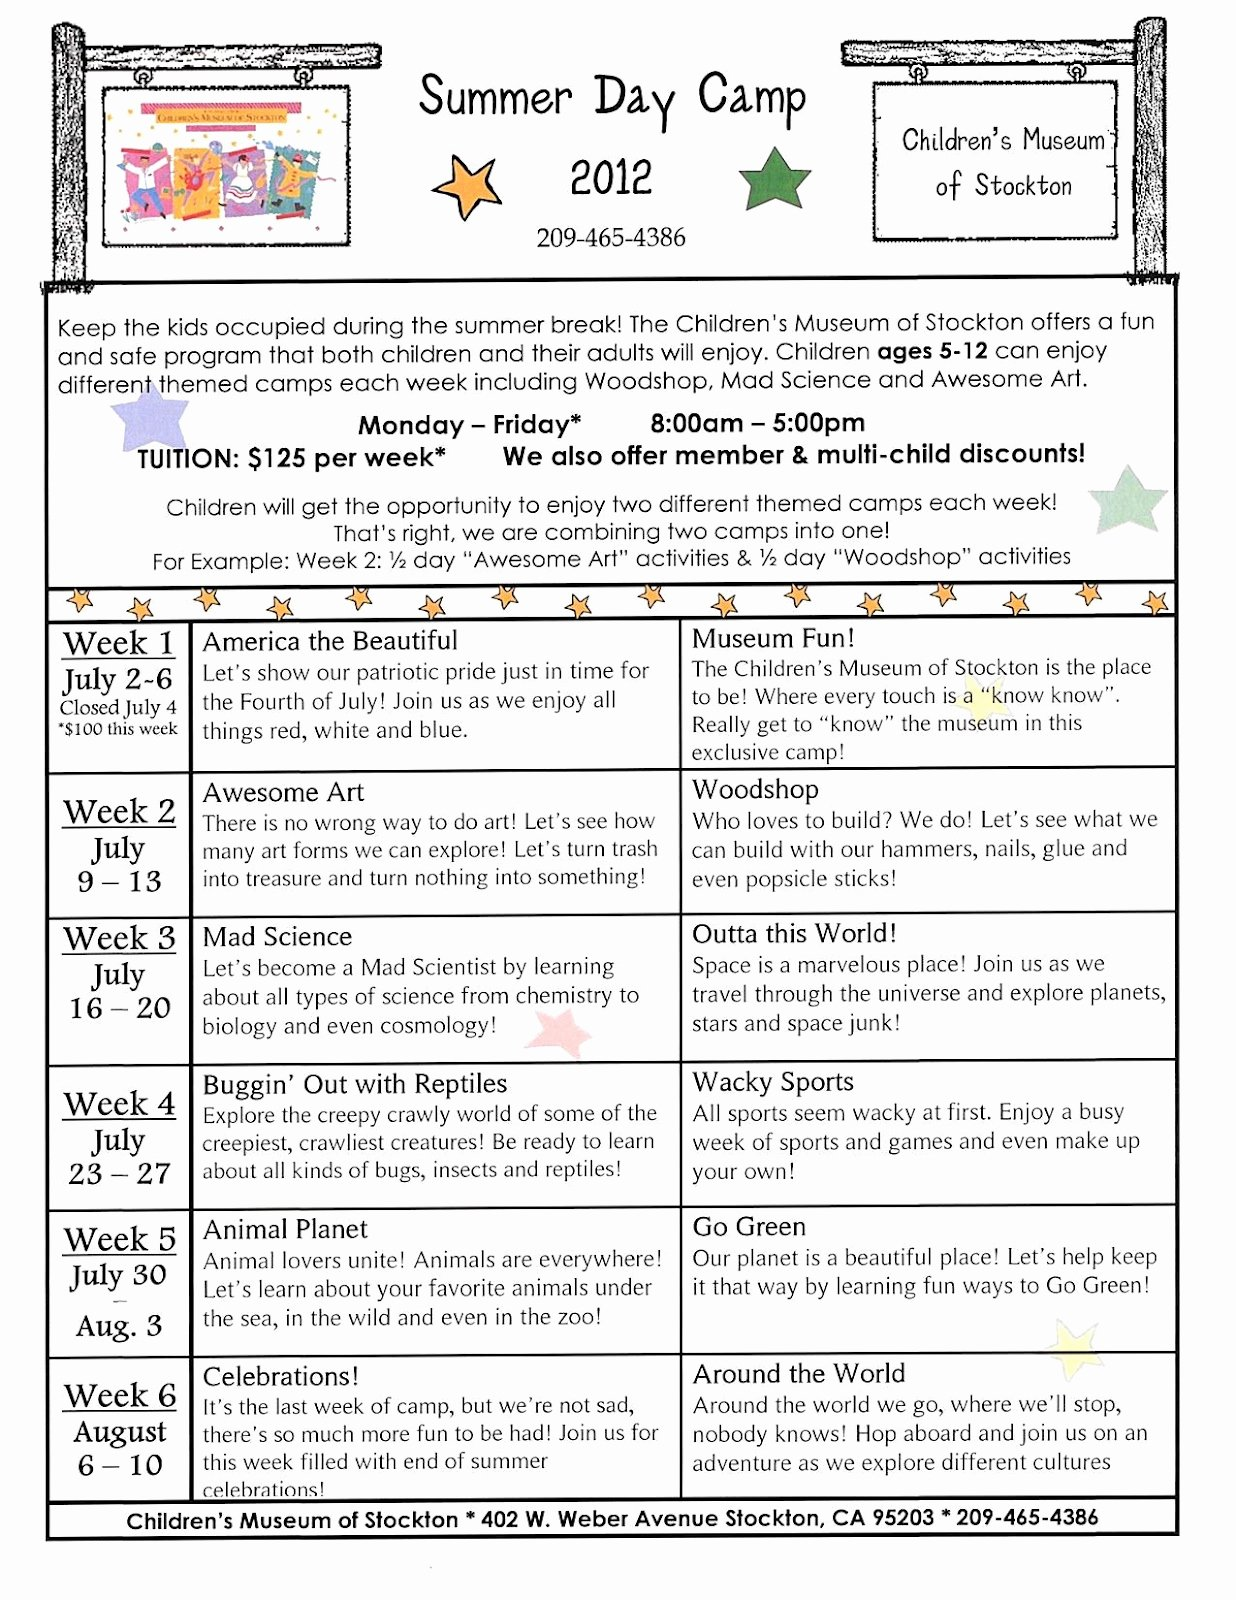 Summer Camp Schedules Template Inspirational Children S Museum Of Stockton